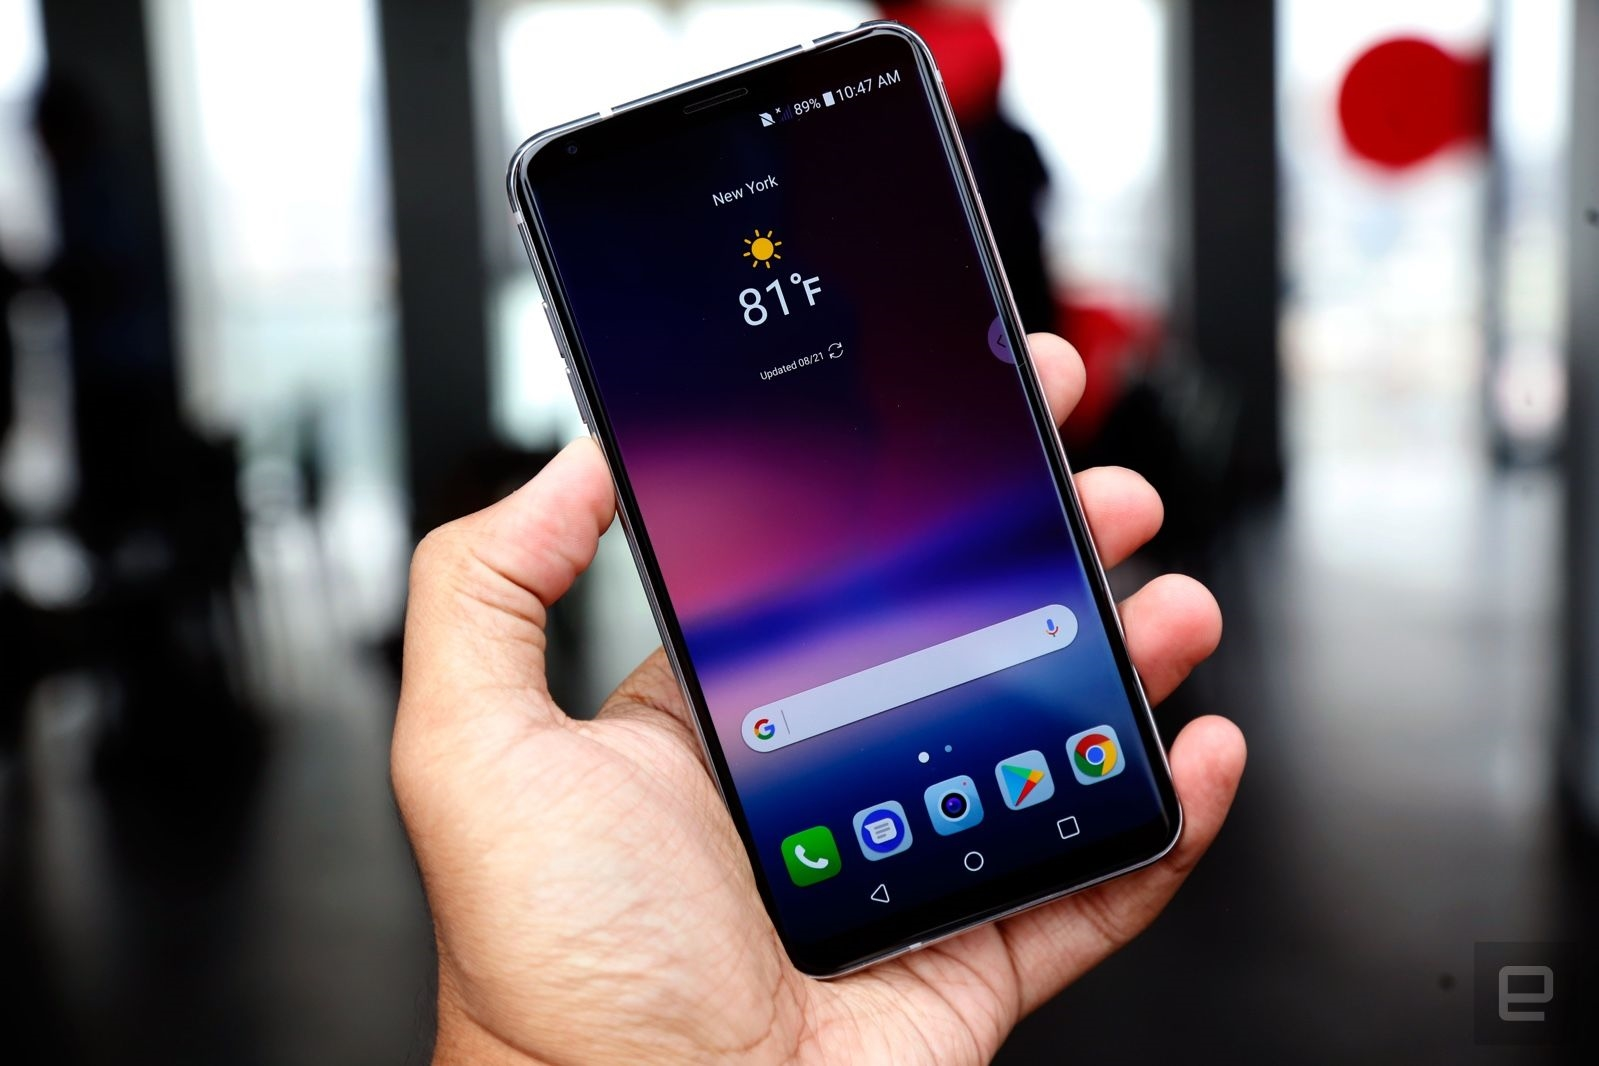 LG V30 hands-on: The phone the G6 should've been | DeviceDaily.com